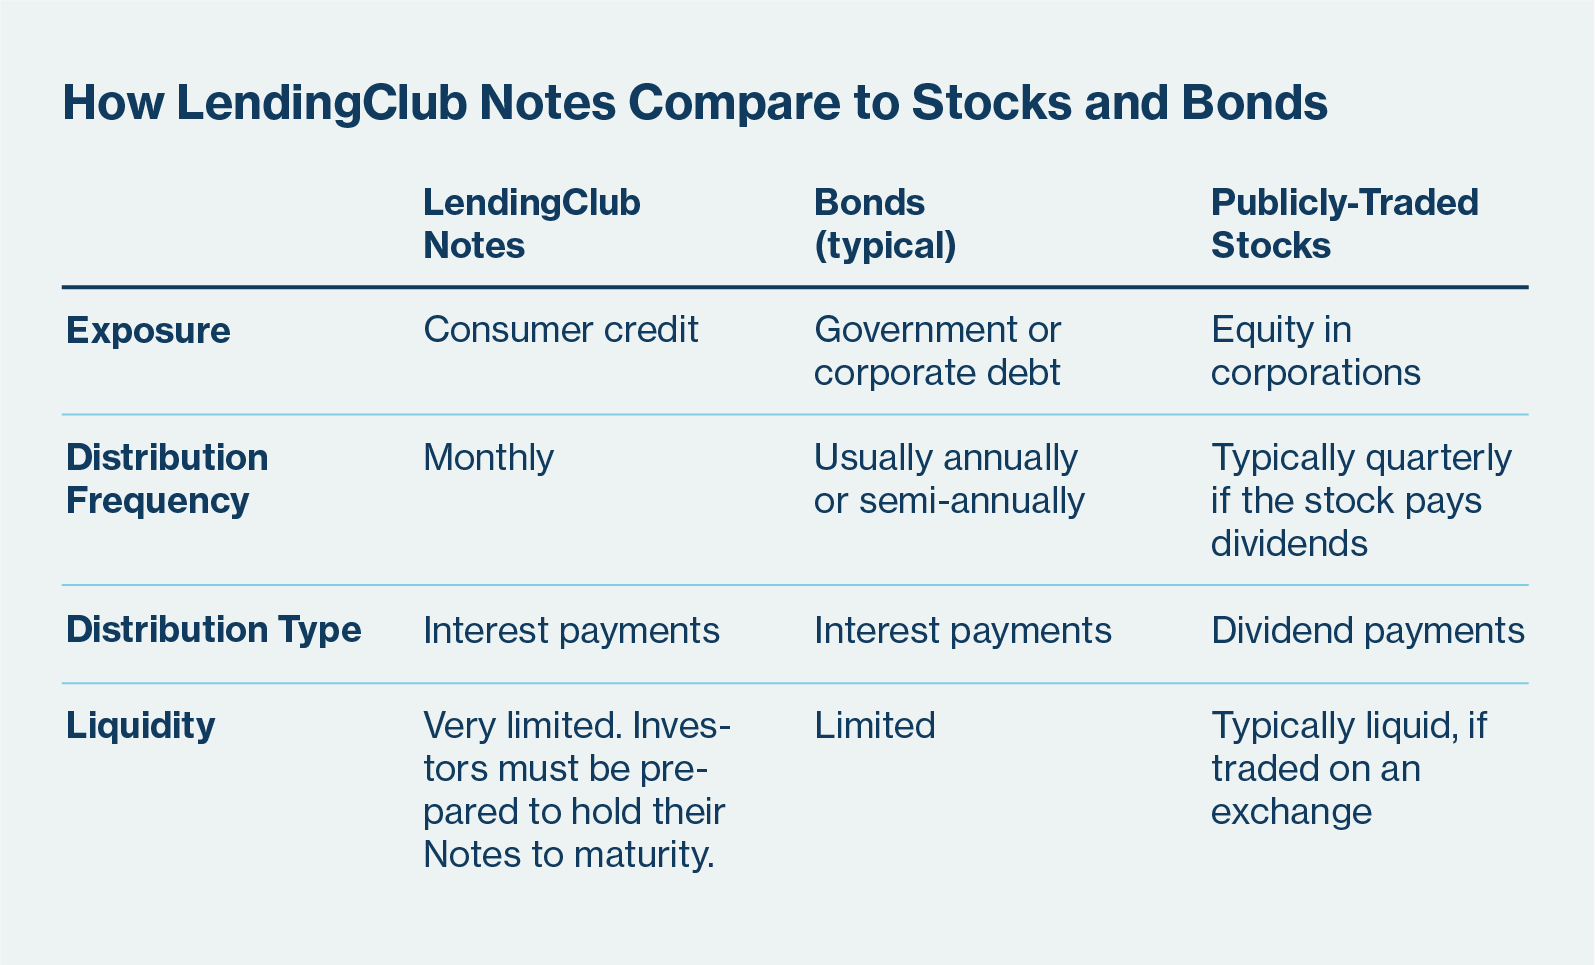 Asset class comparison between LendingClub Notes, stocks, and bonds.